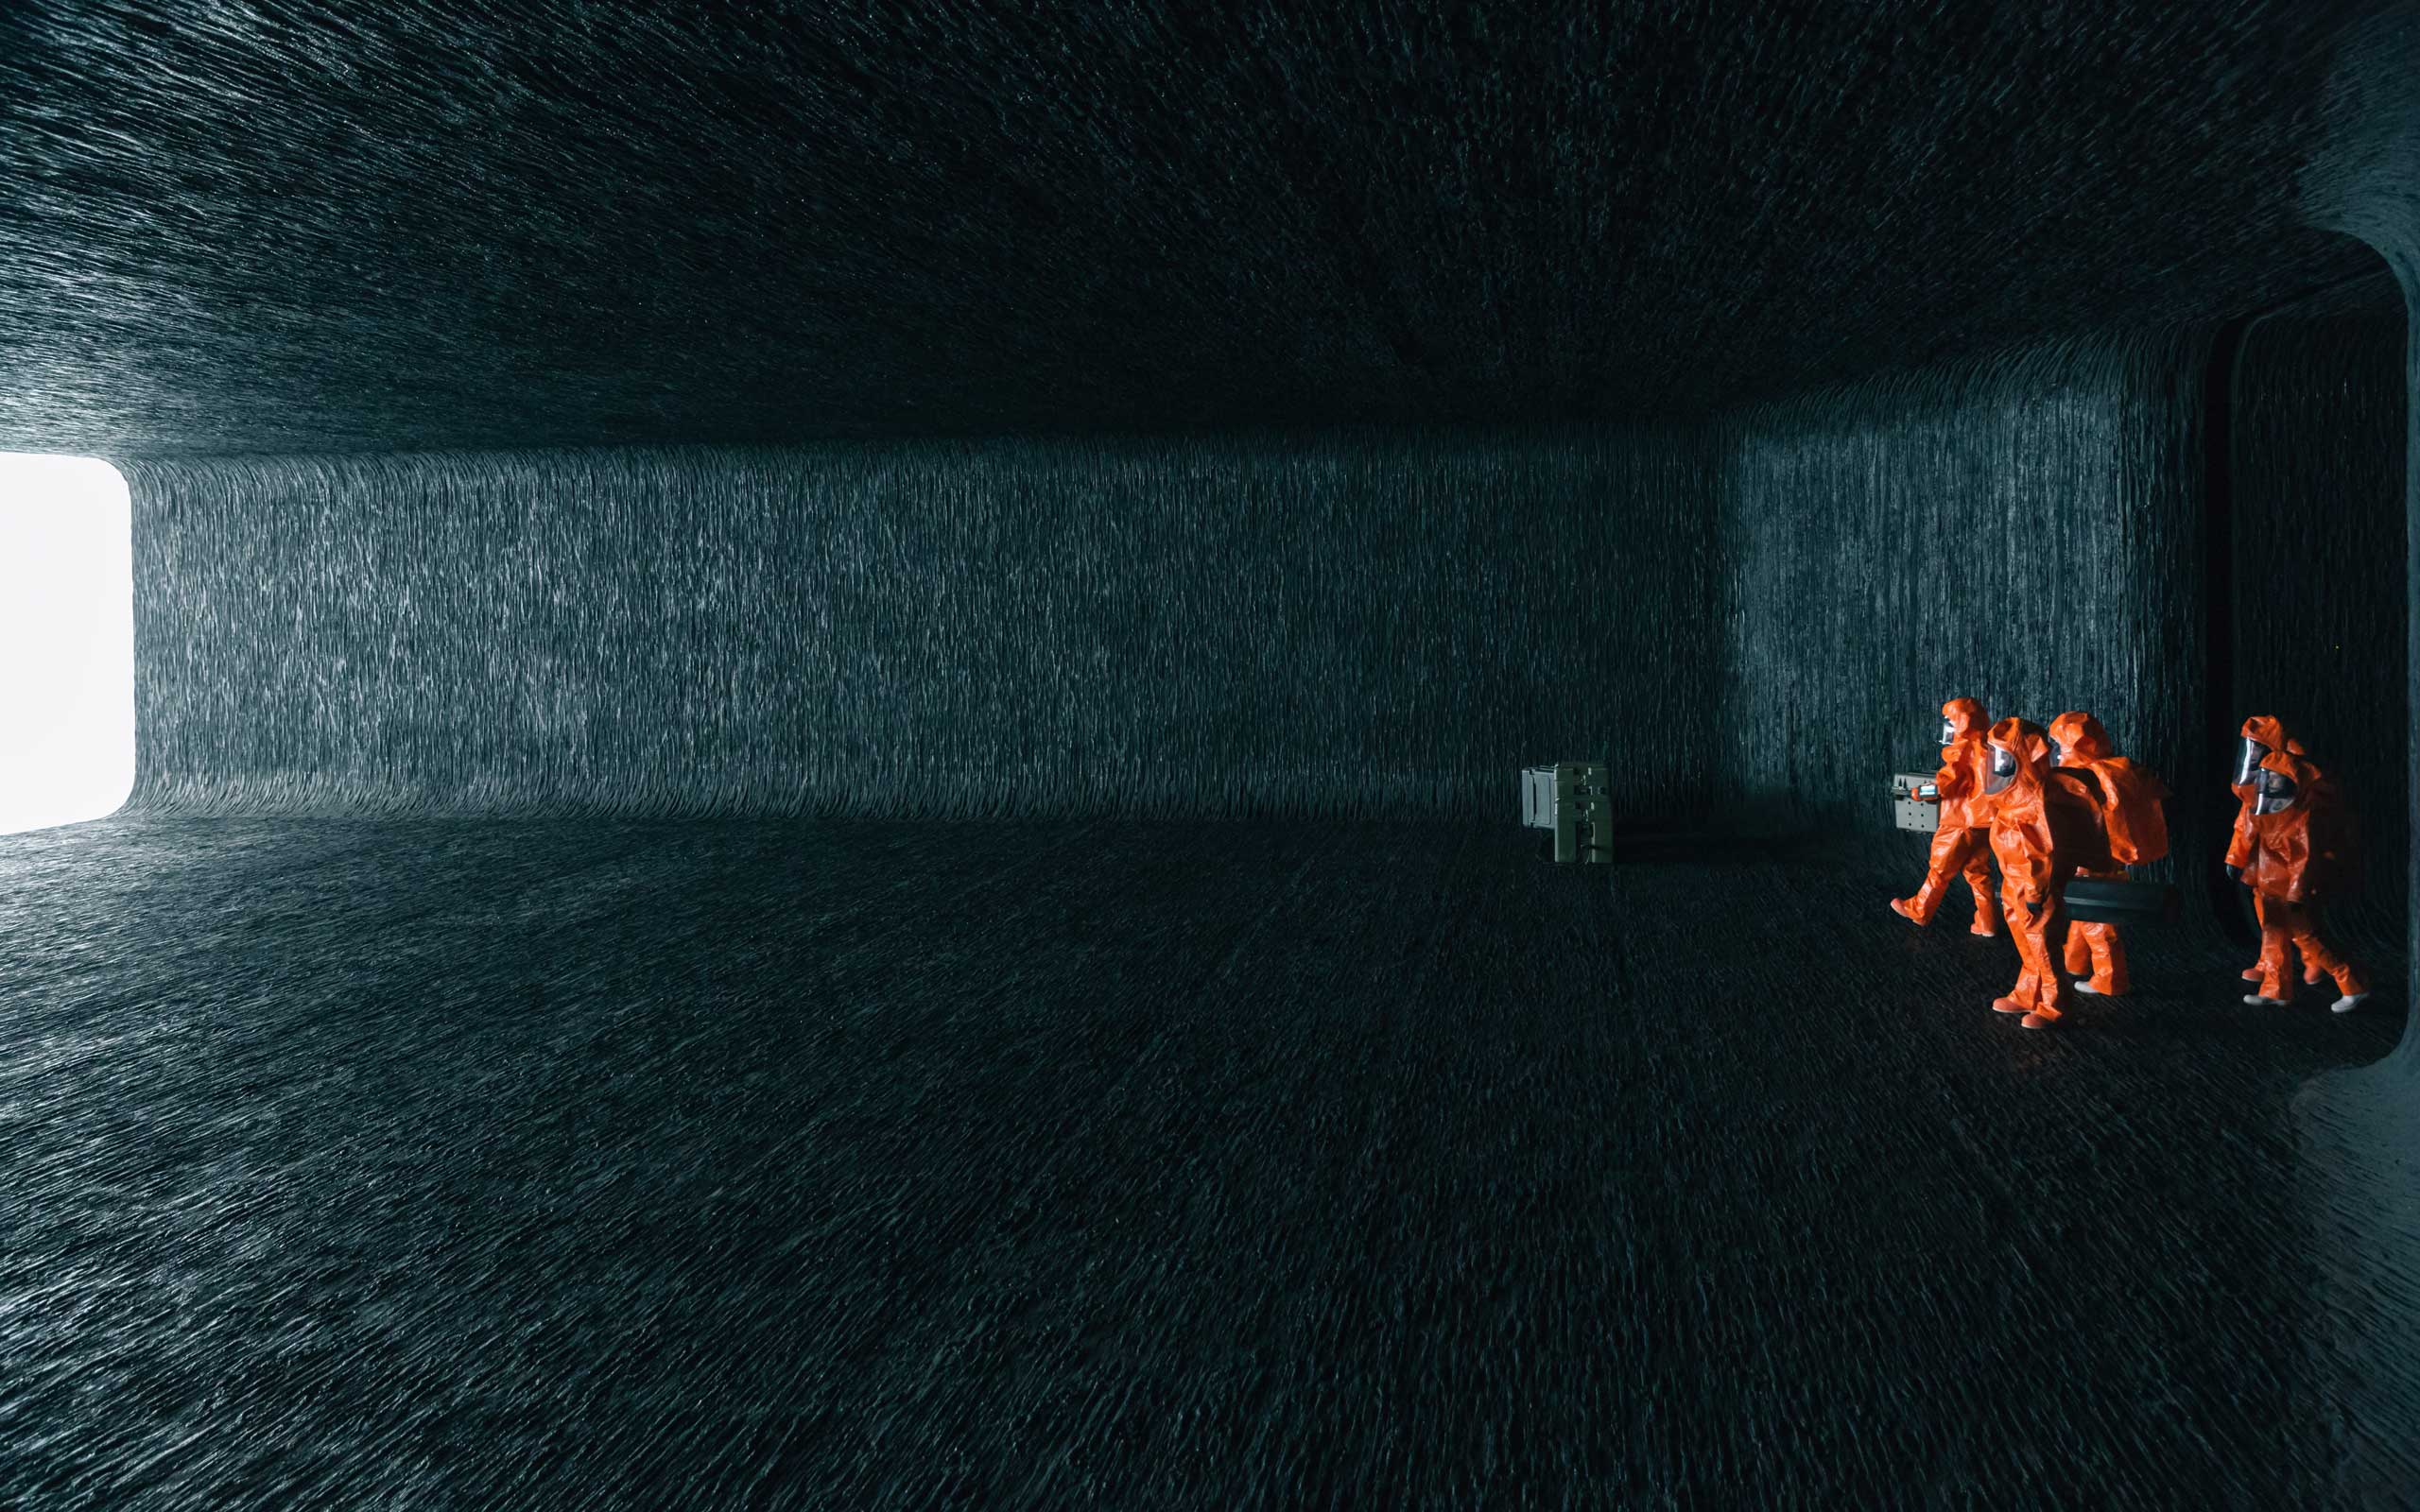 A scene inside the spaceship's chamber from the film  Arrival  by Paramount Pictures